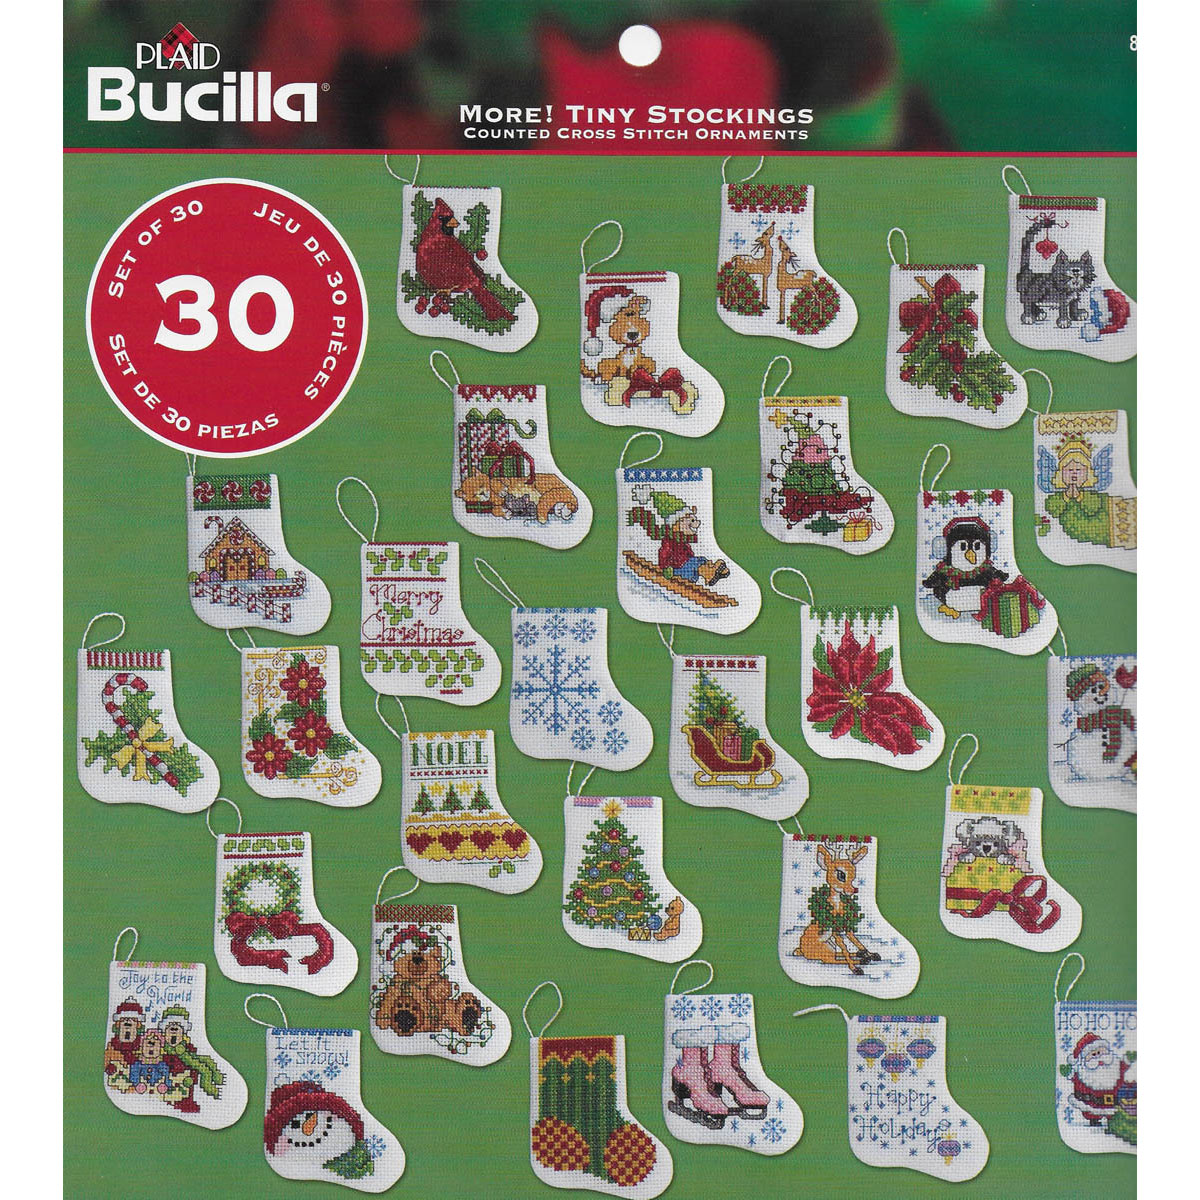 Bucilla ® Seasonal - Counted Cross Stitch - Ornament Kits - More Tiny Stockings - 86261